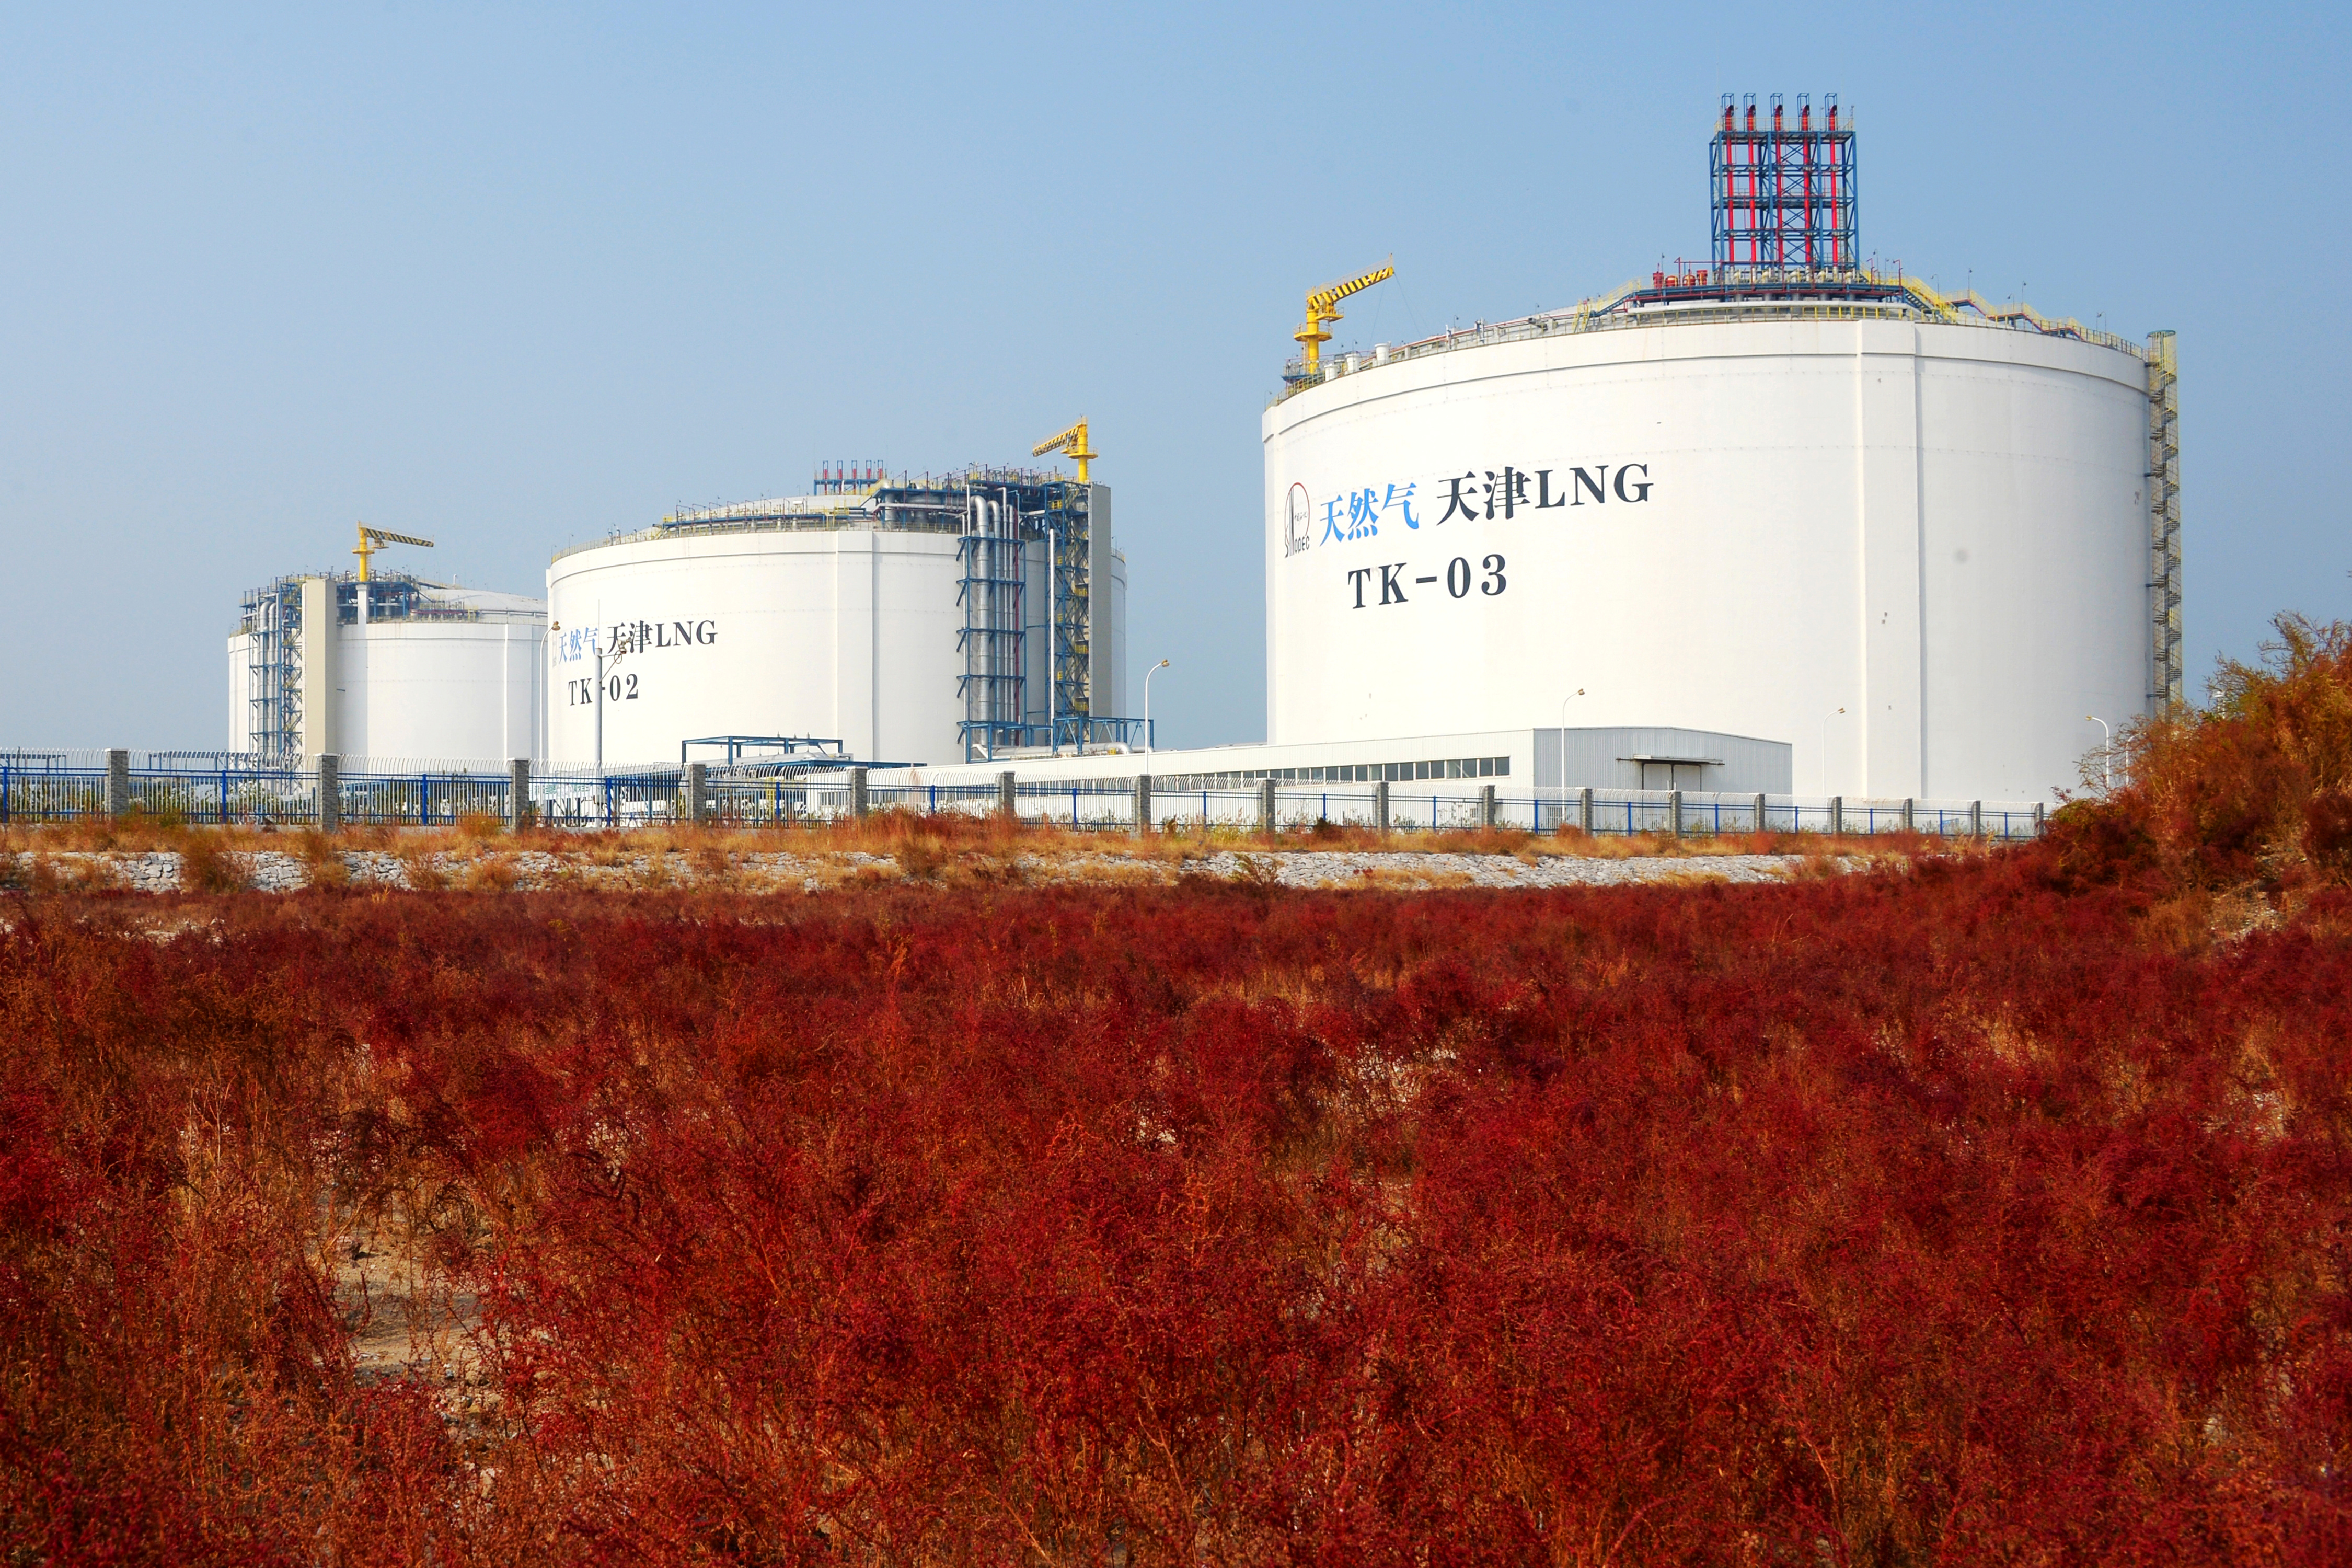 Liquefied natural gas (LNG) storage tanks are seen at the Sinopec Tianjin LNG receiving terminal in Tianjin, China October 22, 2018. Picture taken October 22, 2018. REUTERS/Stringer